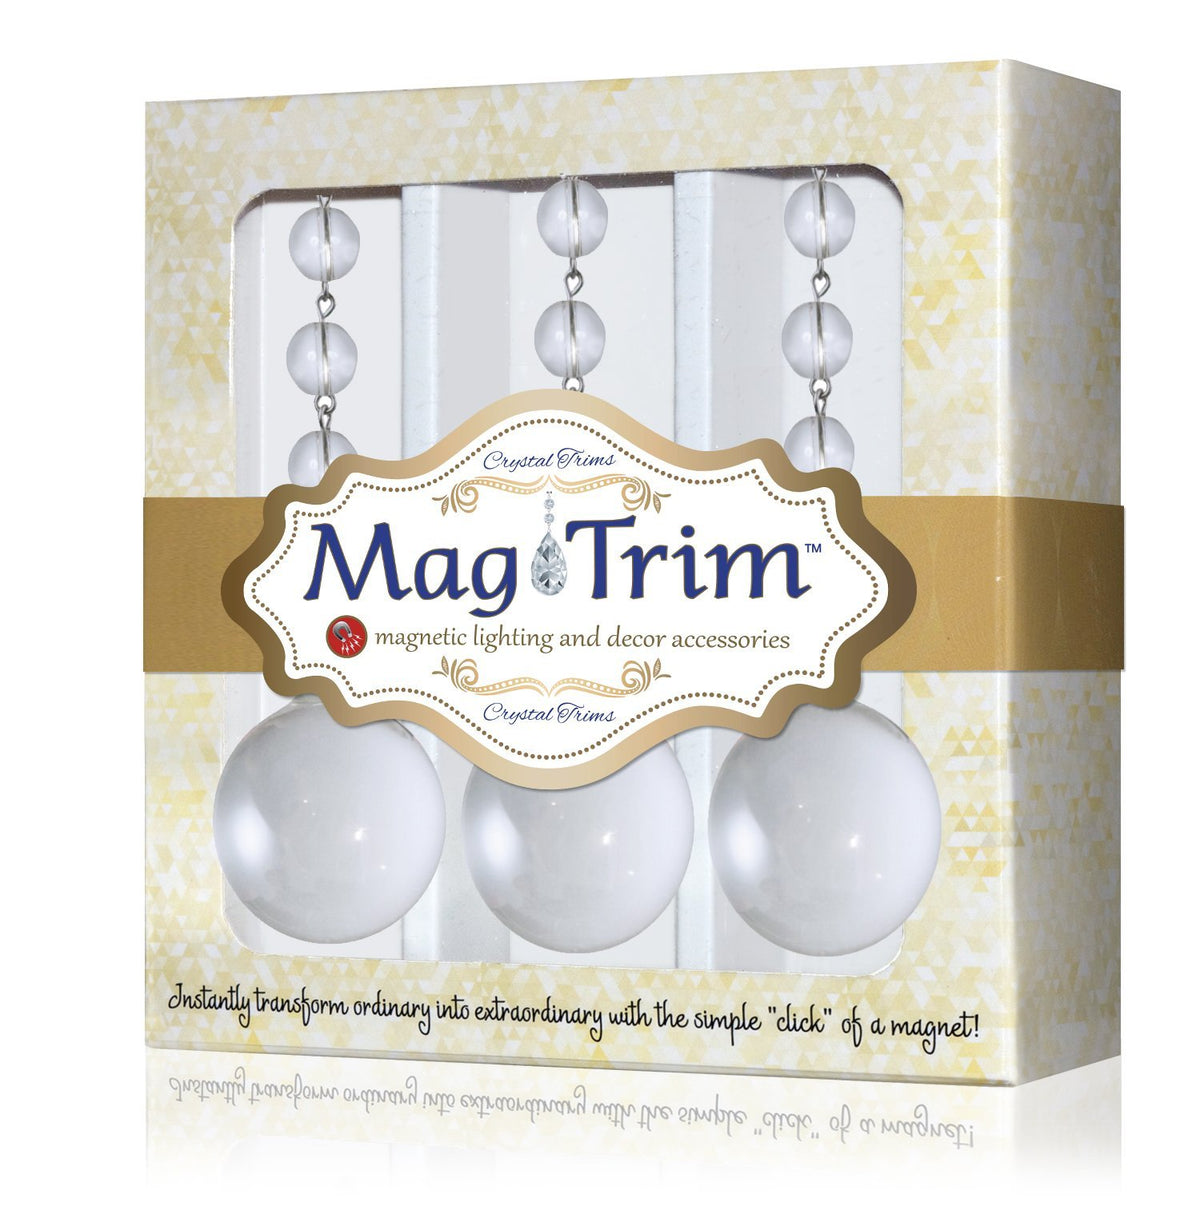 40mm CLEAR SOLID GLASS BALL (Box of 3) Magnetic Chandelier Crystal TrimKit® Light Charm MagTrim Set/3